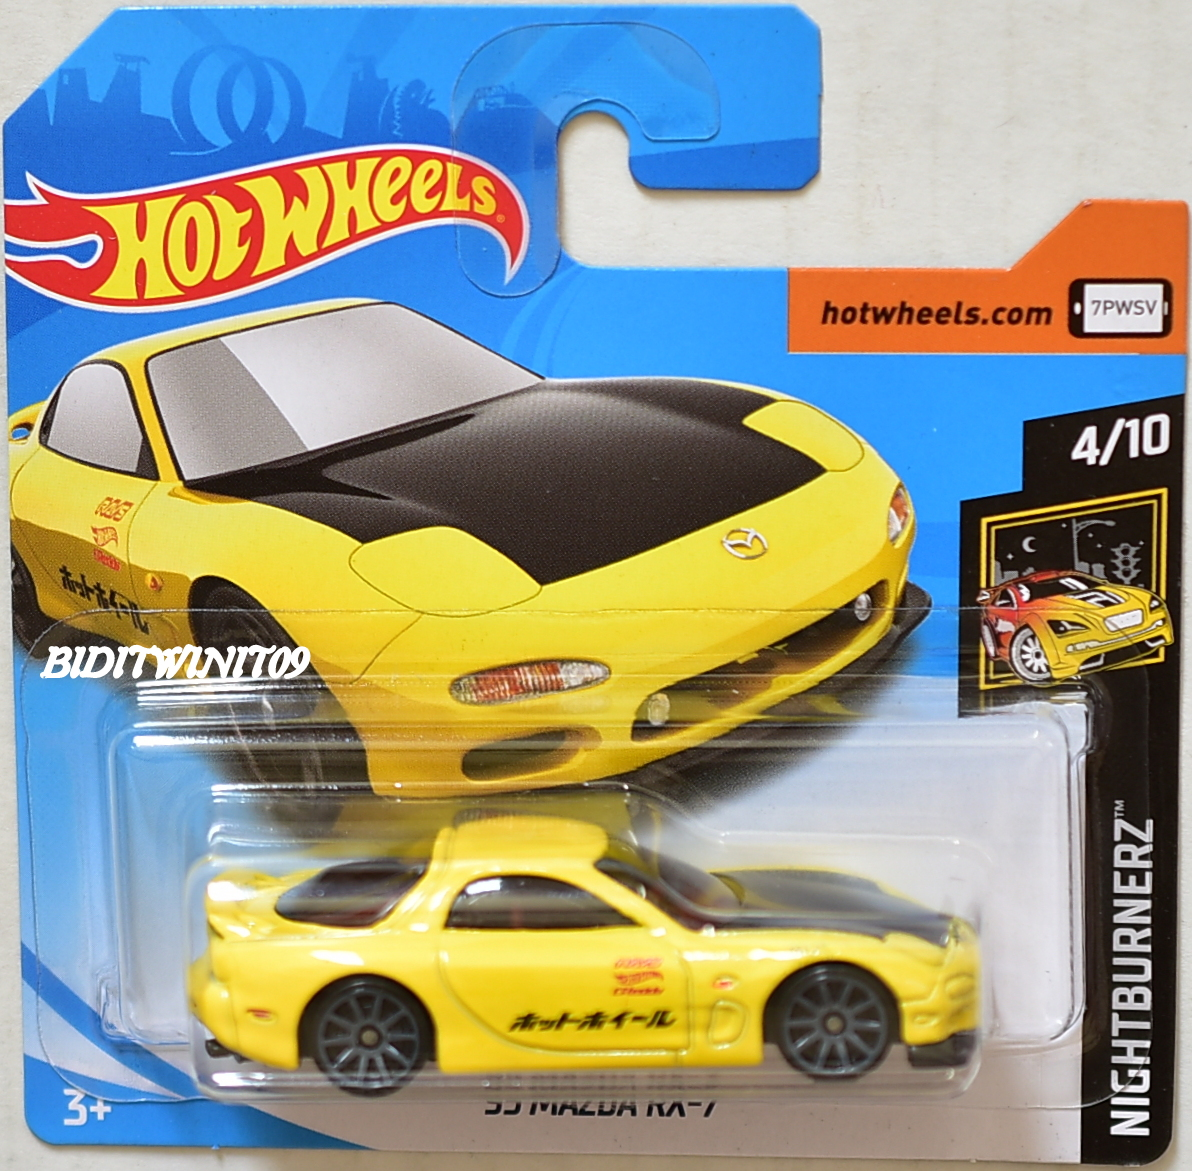 hot wheels 2018 nightburnerz 95 mazda rx 7 4 10 yellow short card 0003718. Black Bedroom Furniture Sets. Home Design Ideas